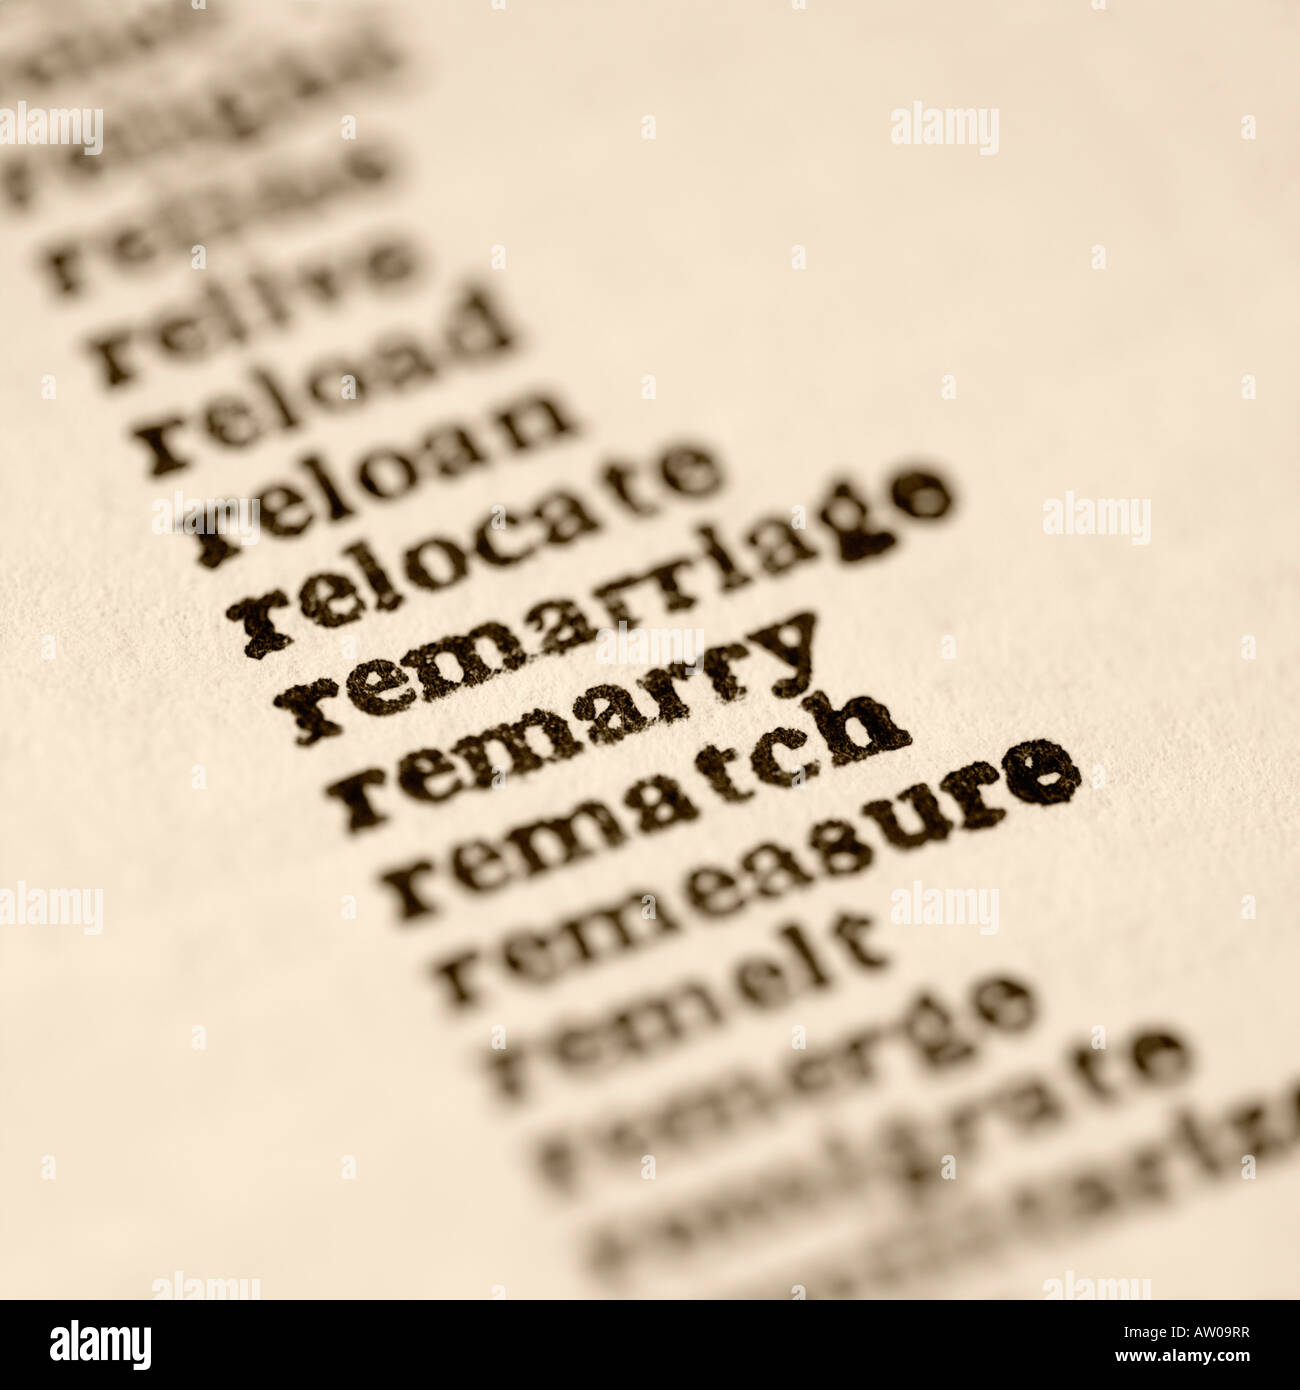 List of words. - Stock Image